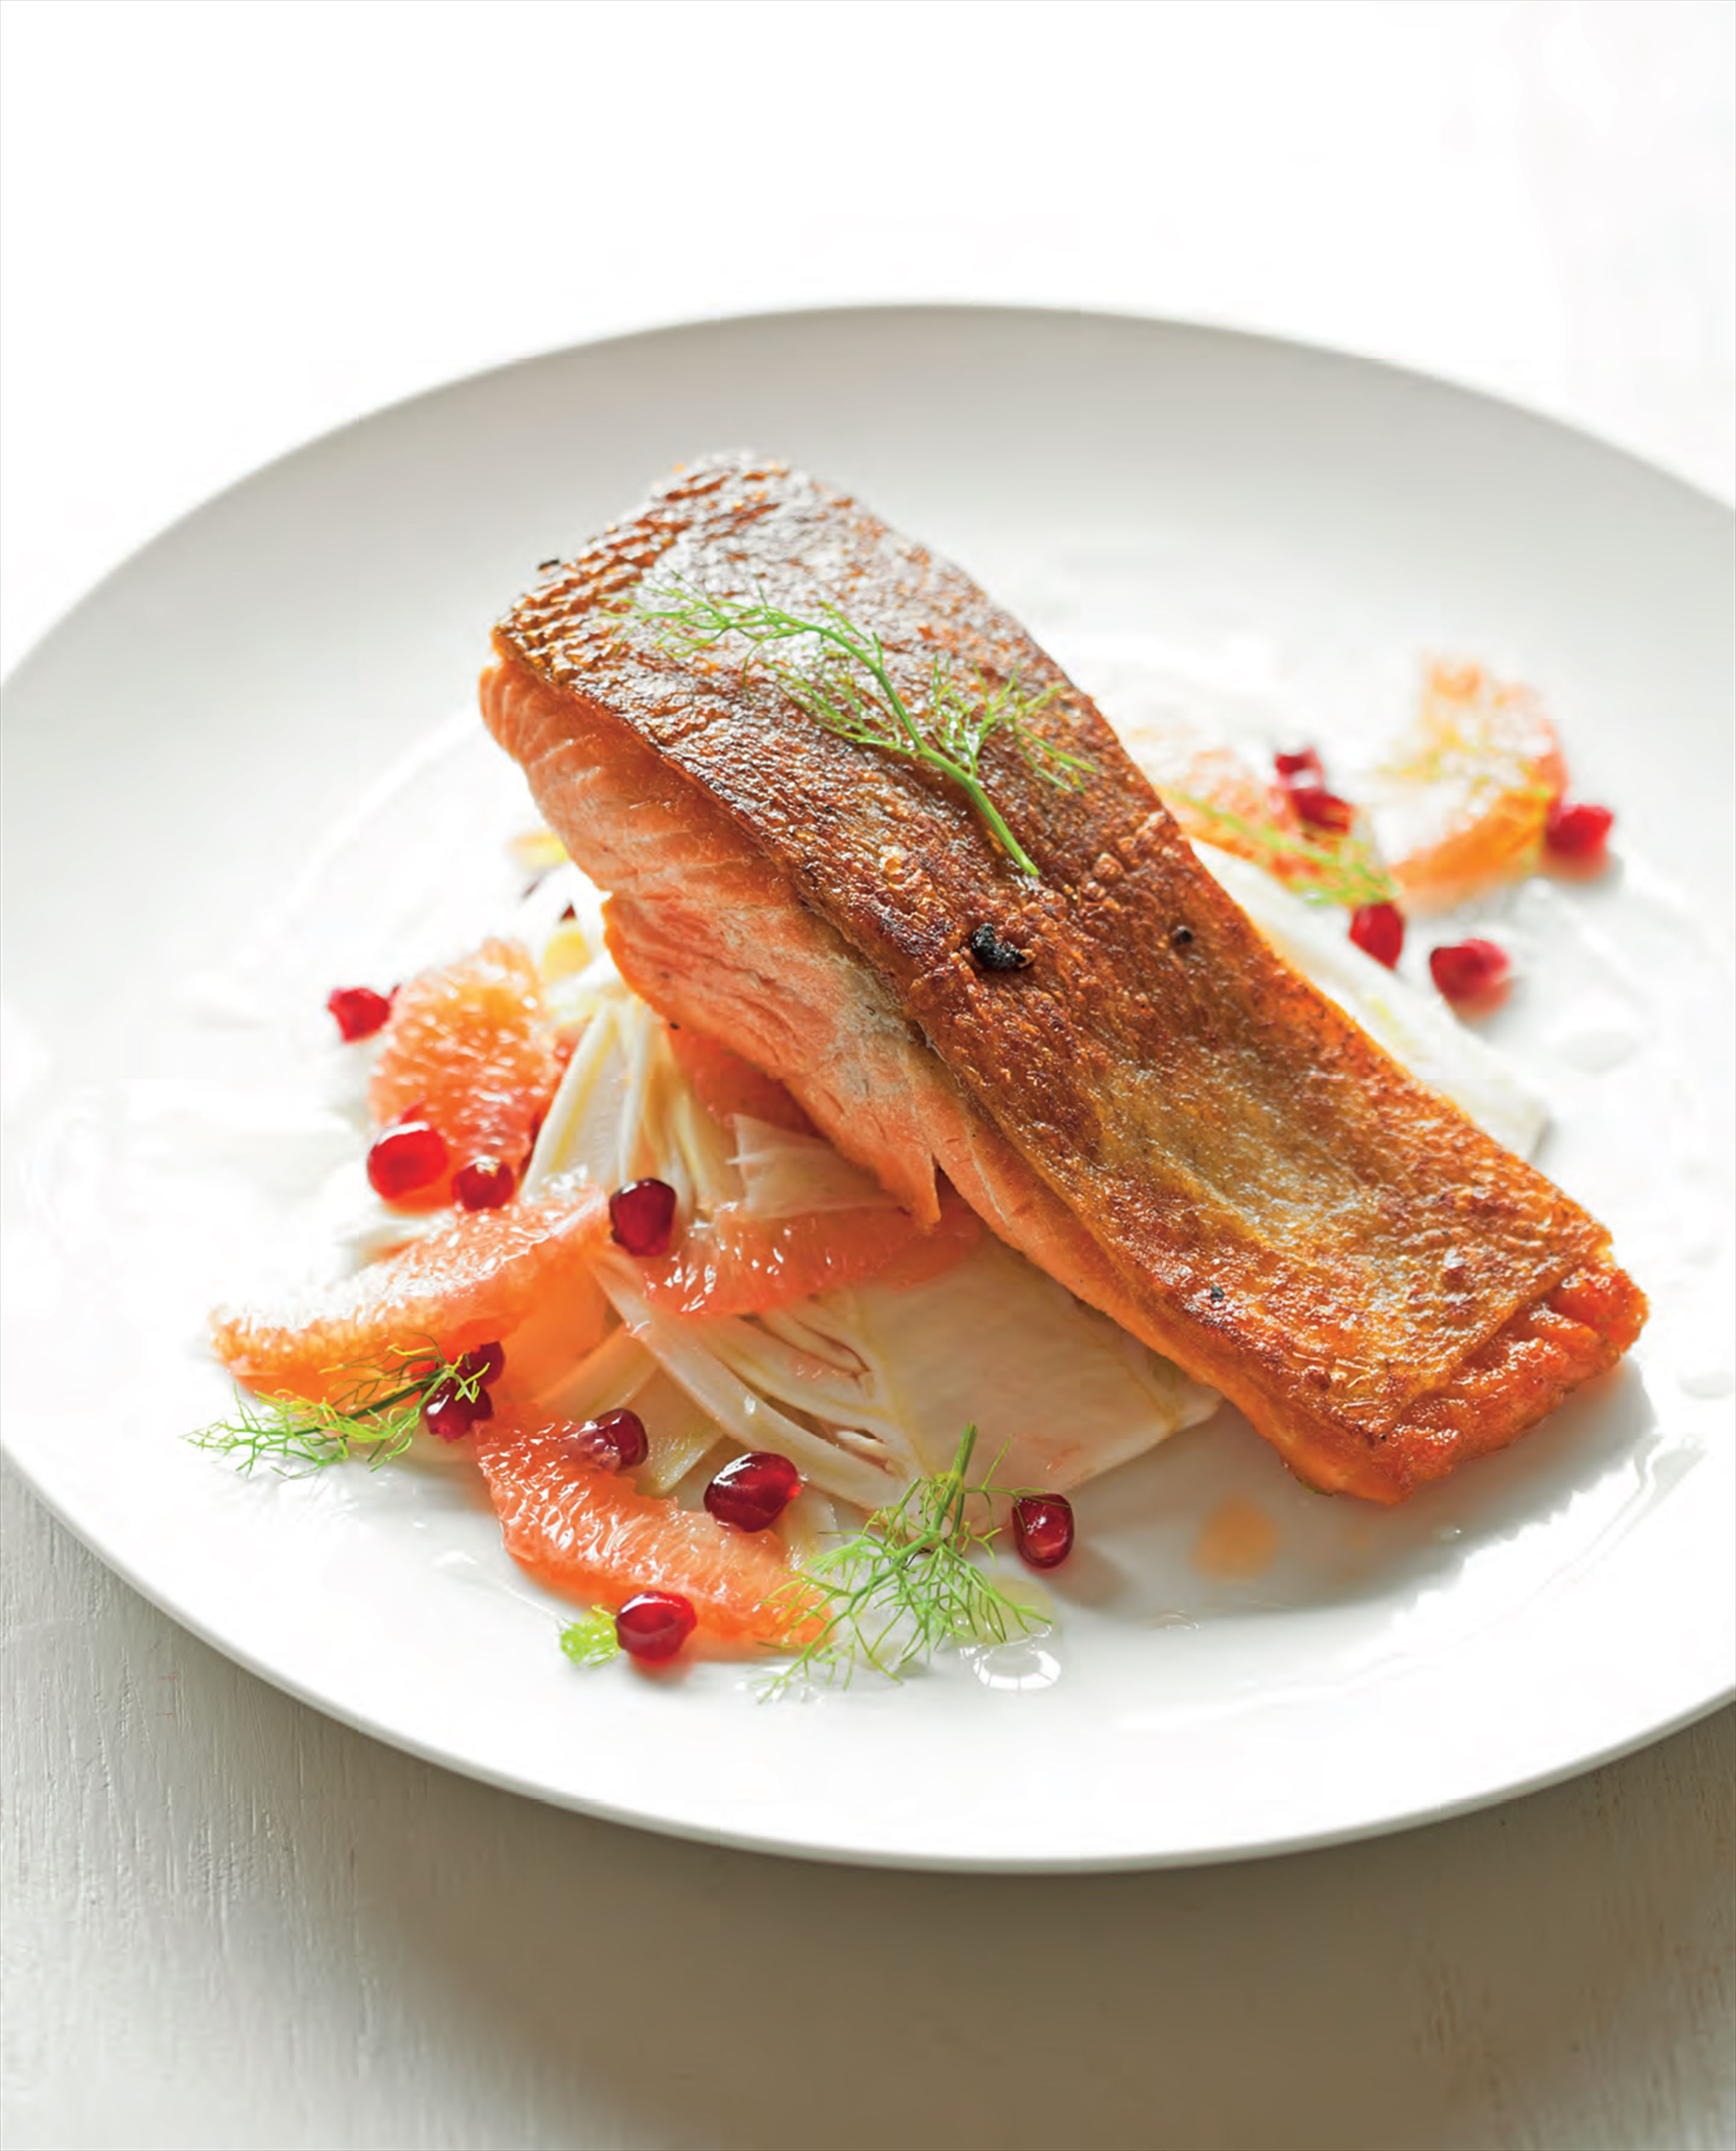 Ocean trout with fennel, grapefruit and pomegranate salad